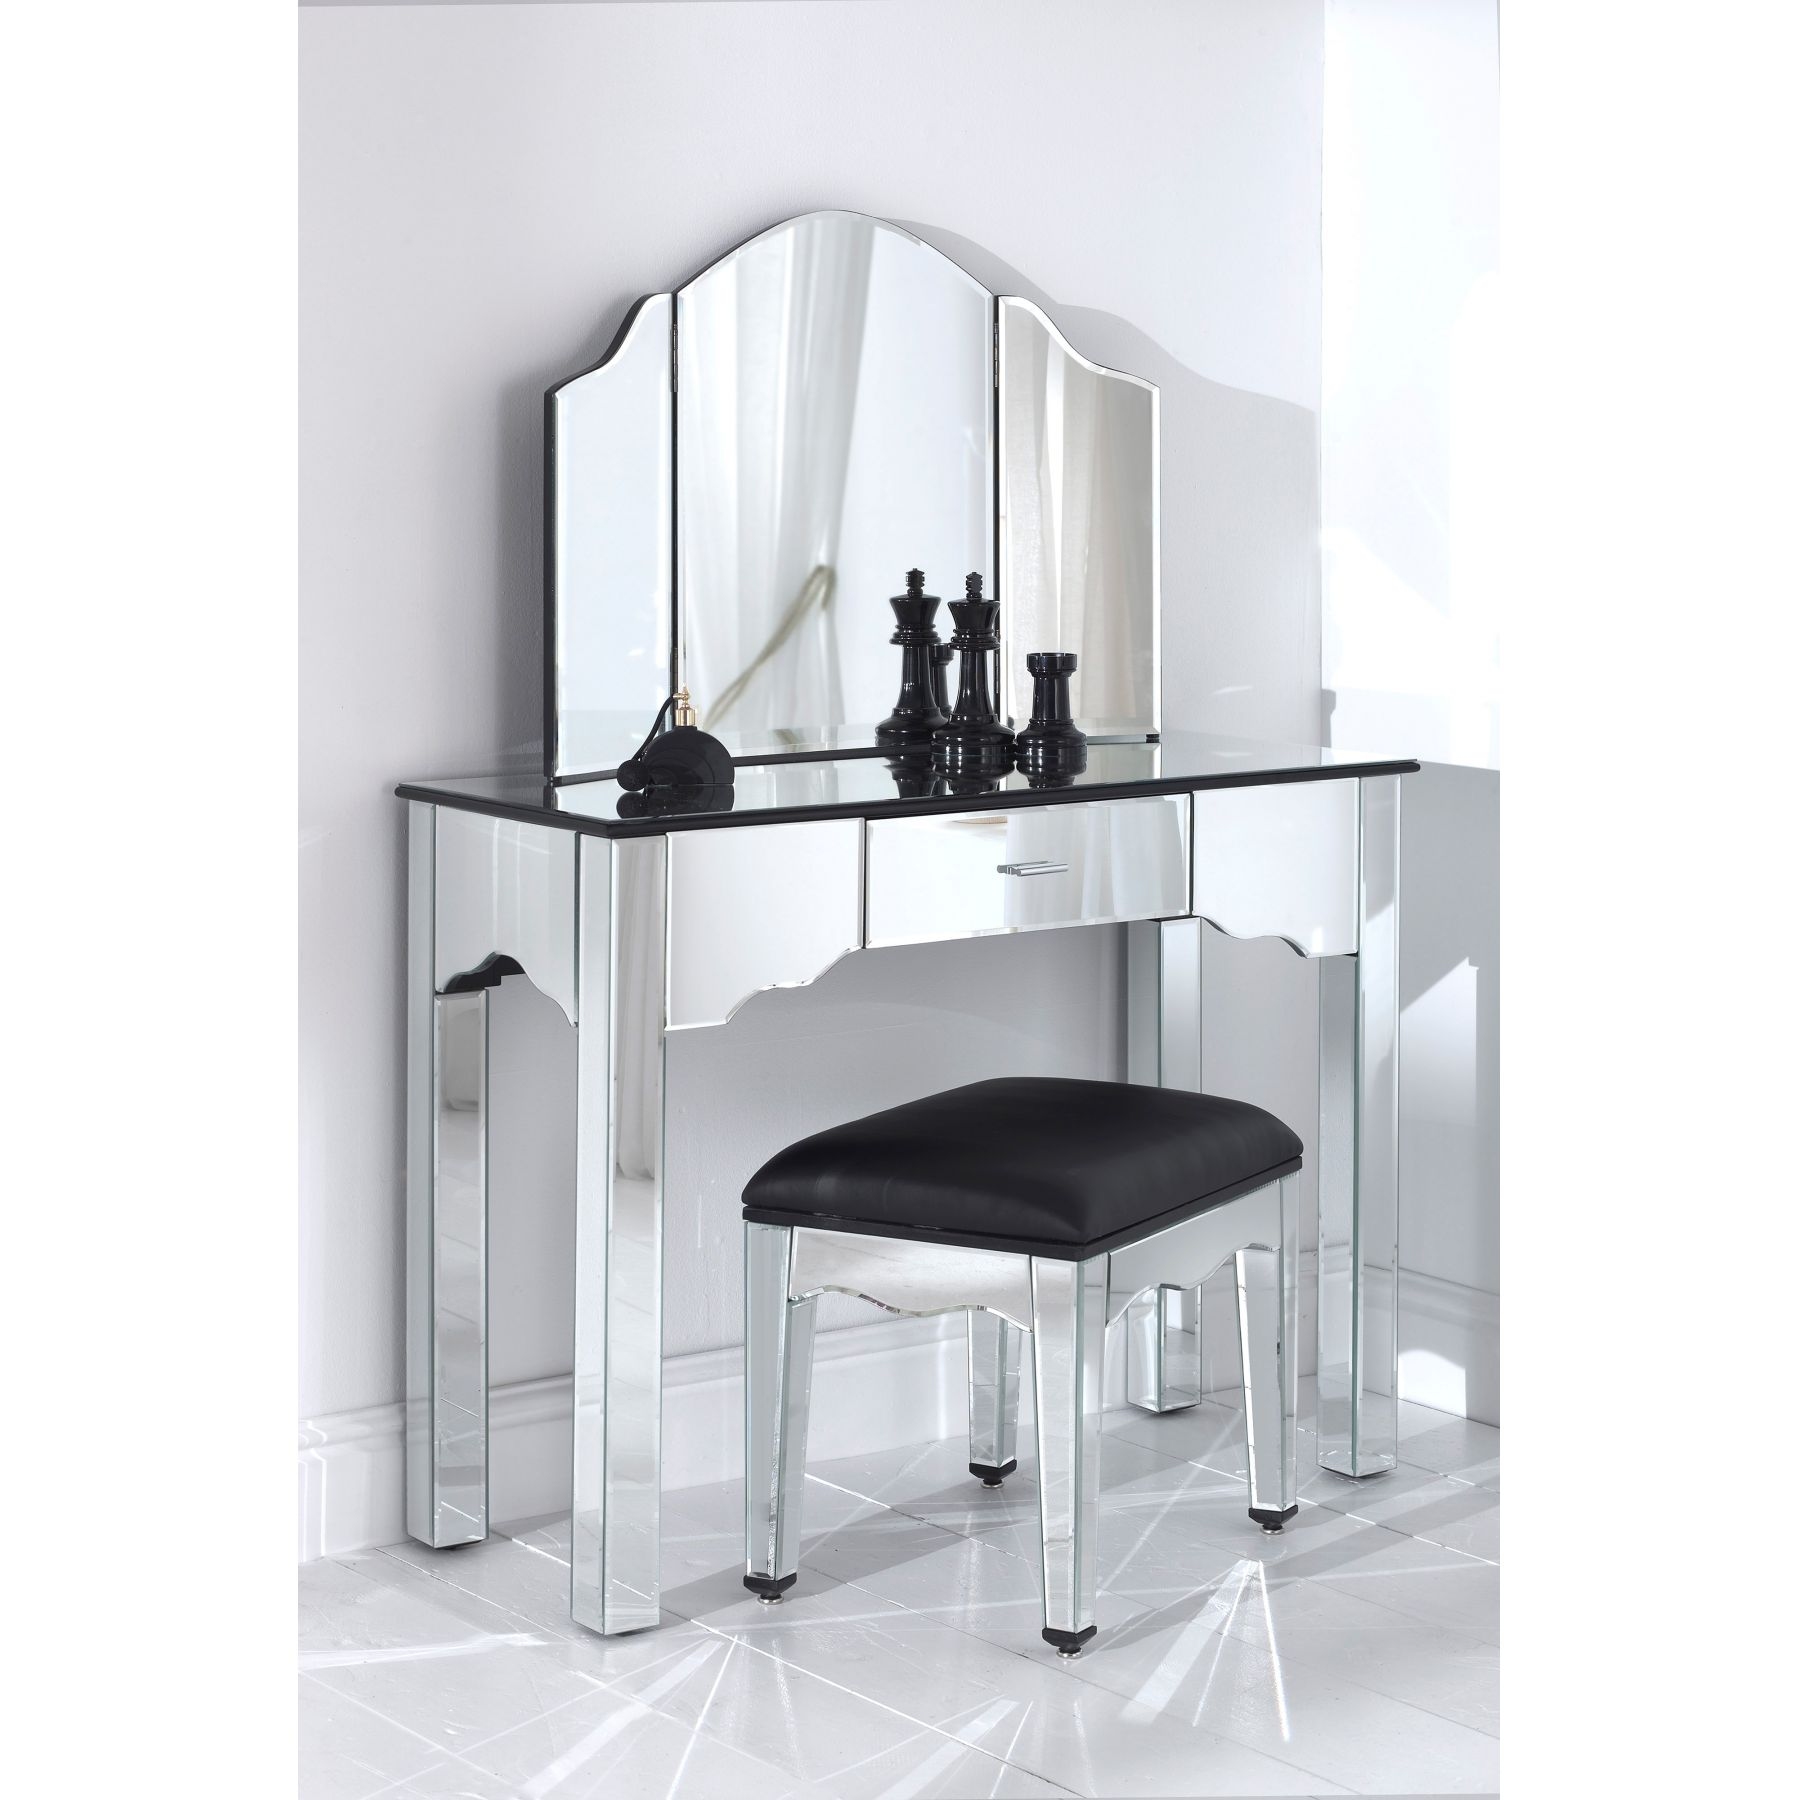 Mirrored Vanity Set for Elegant Bedroom Furniture Design: Vanity Set Makeup | Mirrored Vanity Set | Vanity Mirror Dresser Set